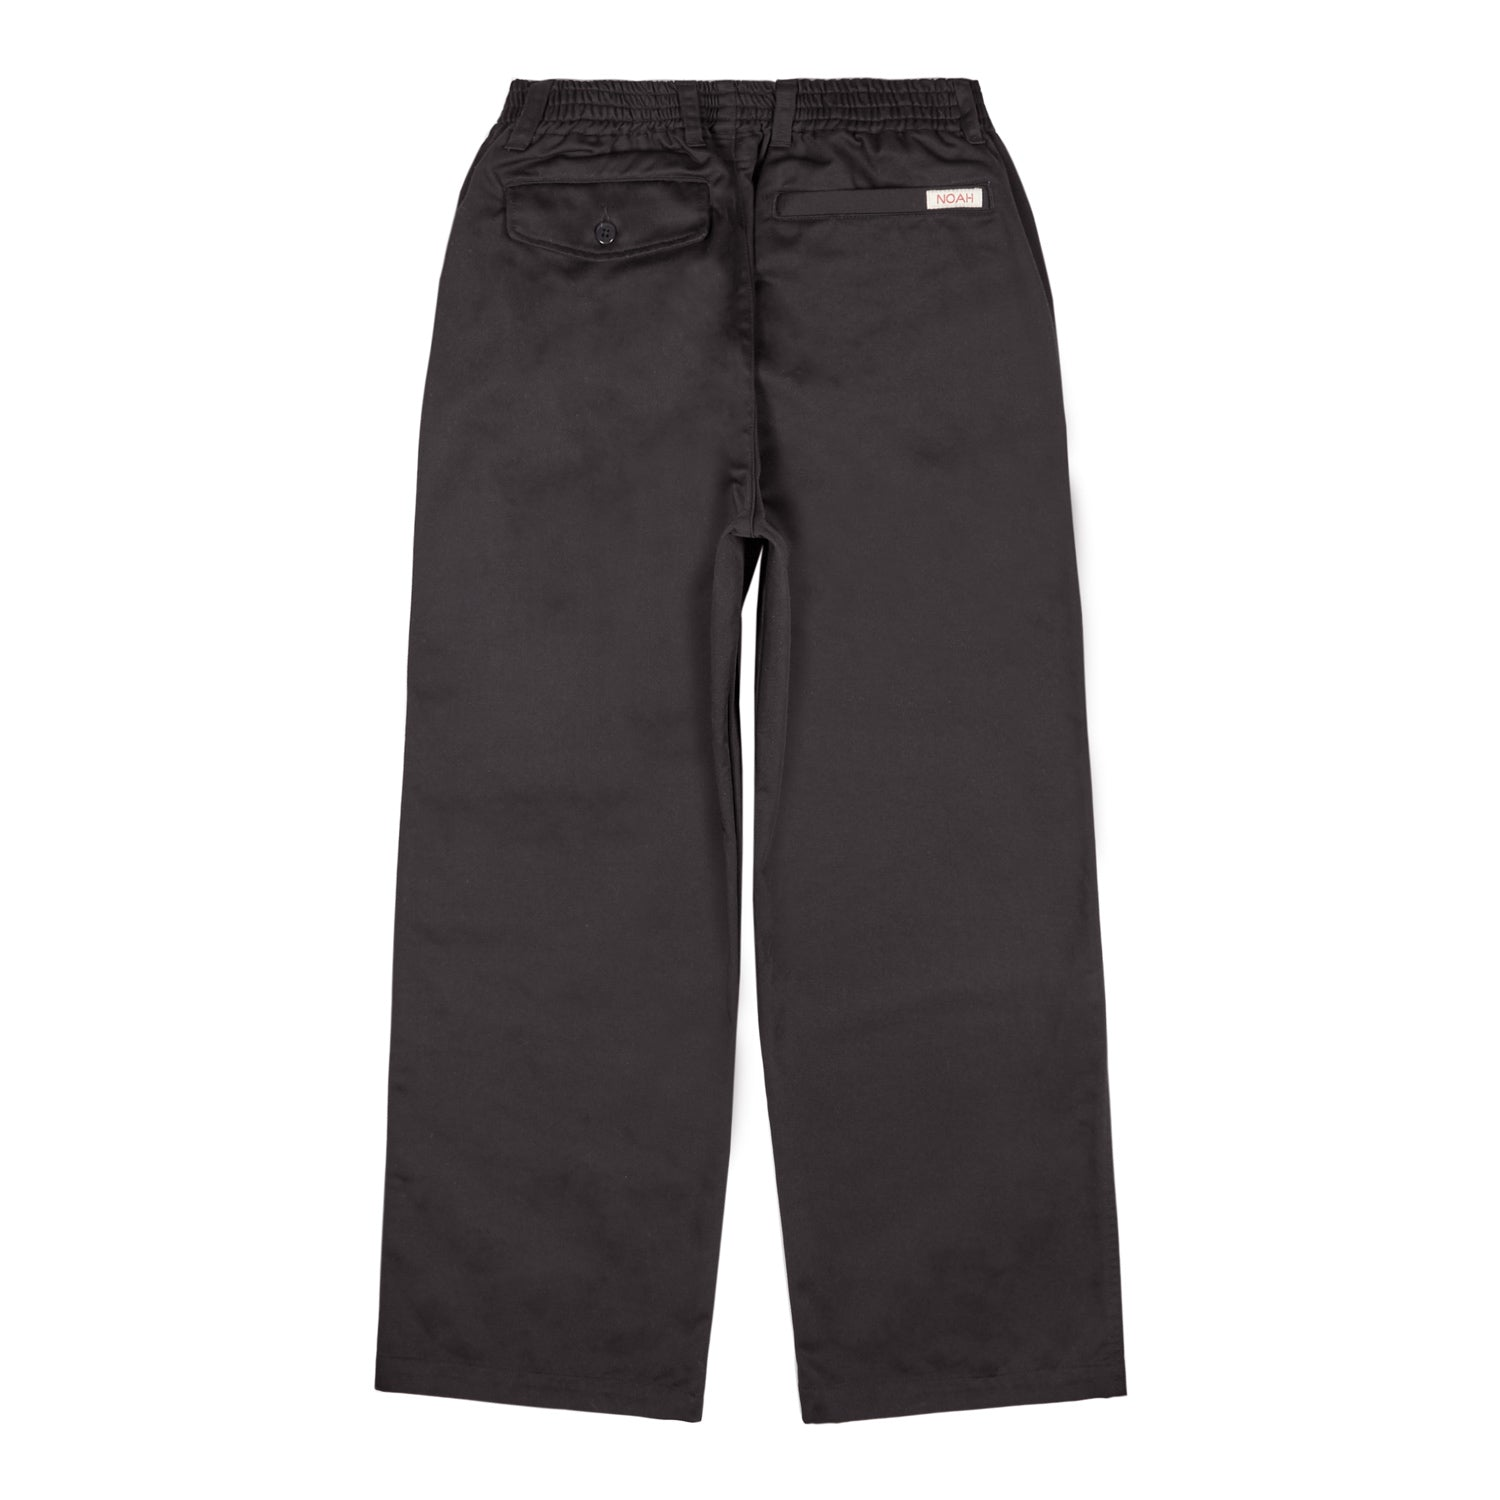 Adjustable Work Pant